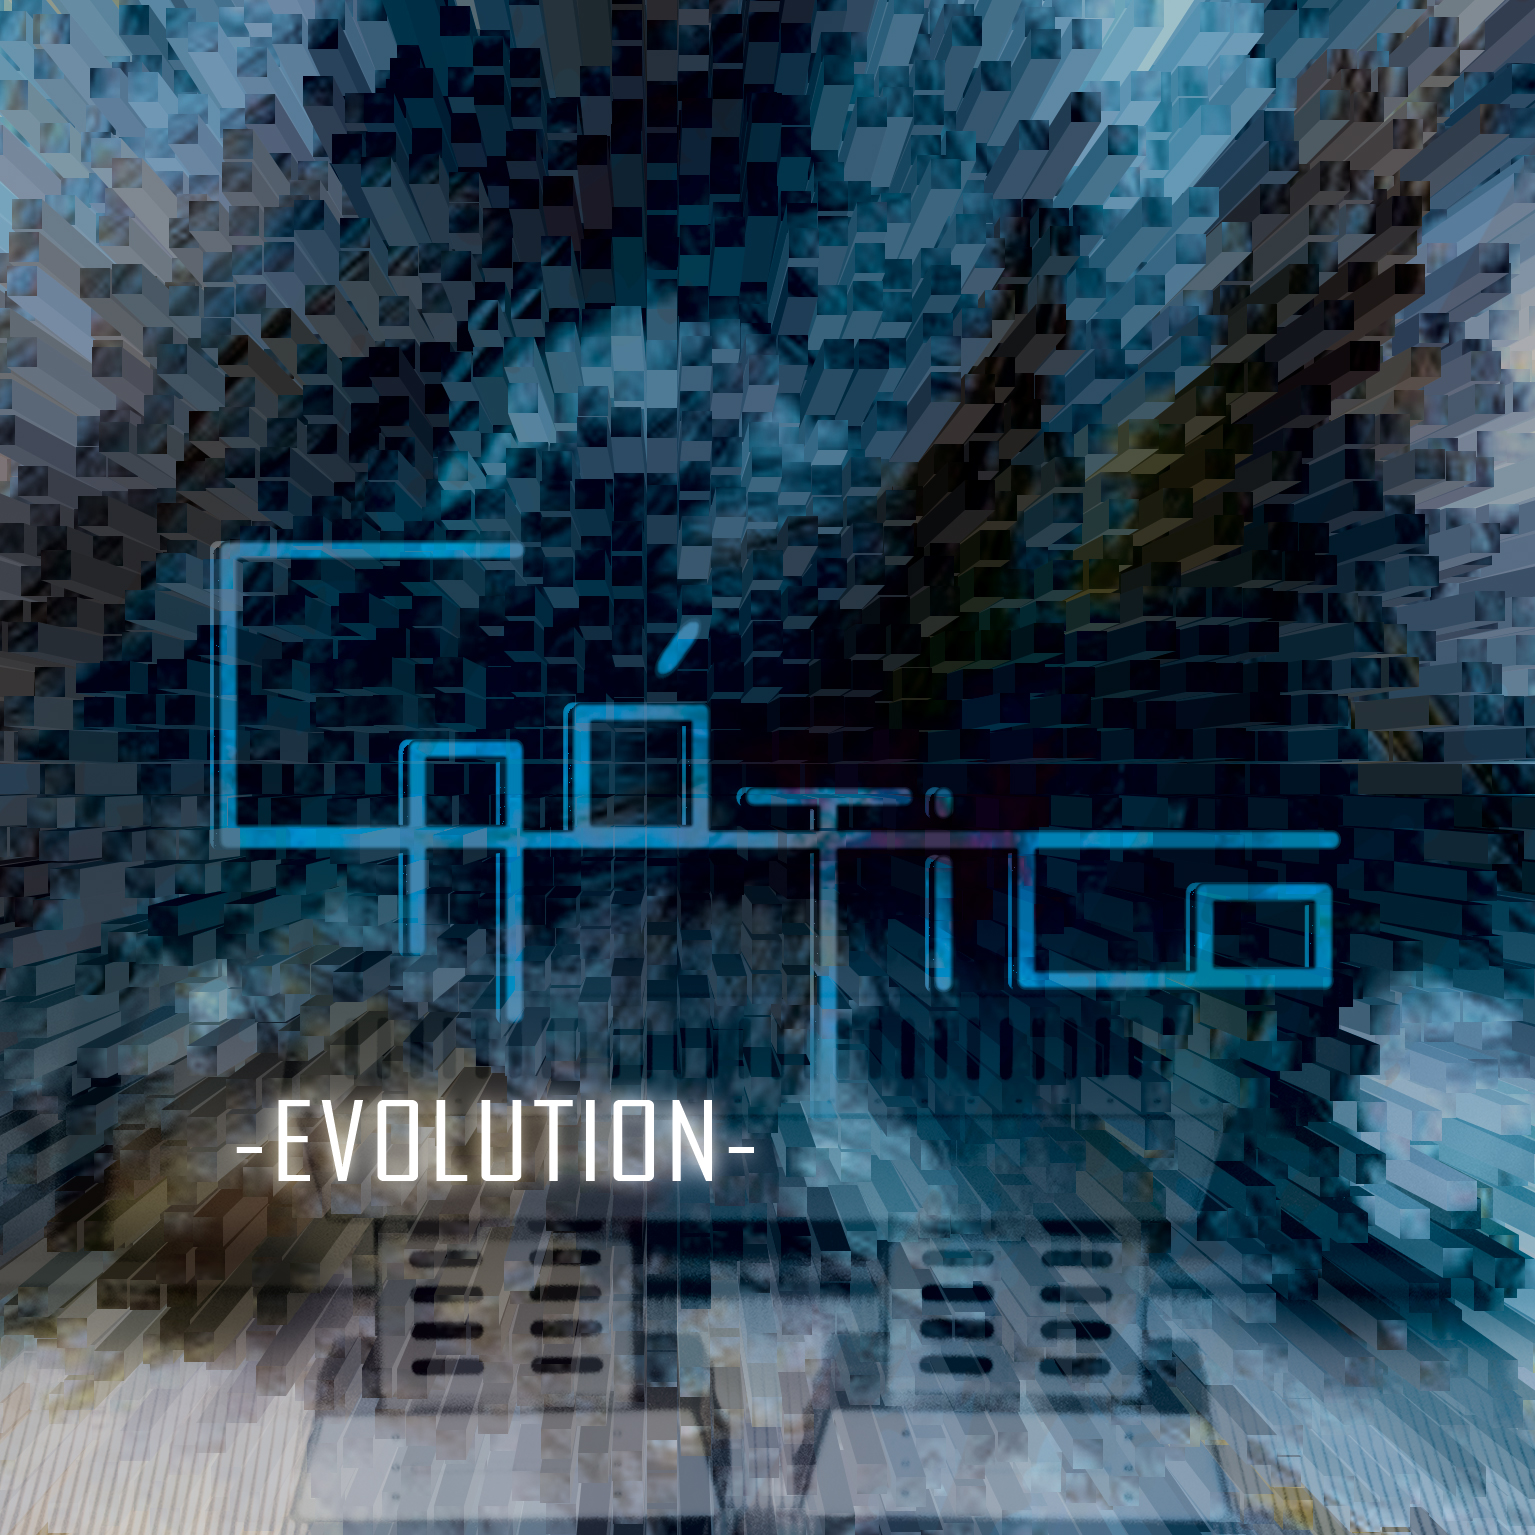 Caótico - Evolution